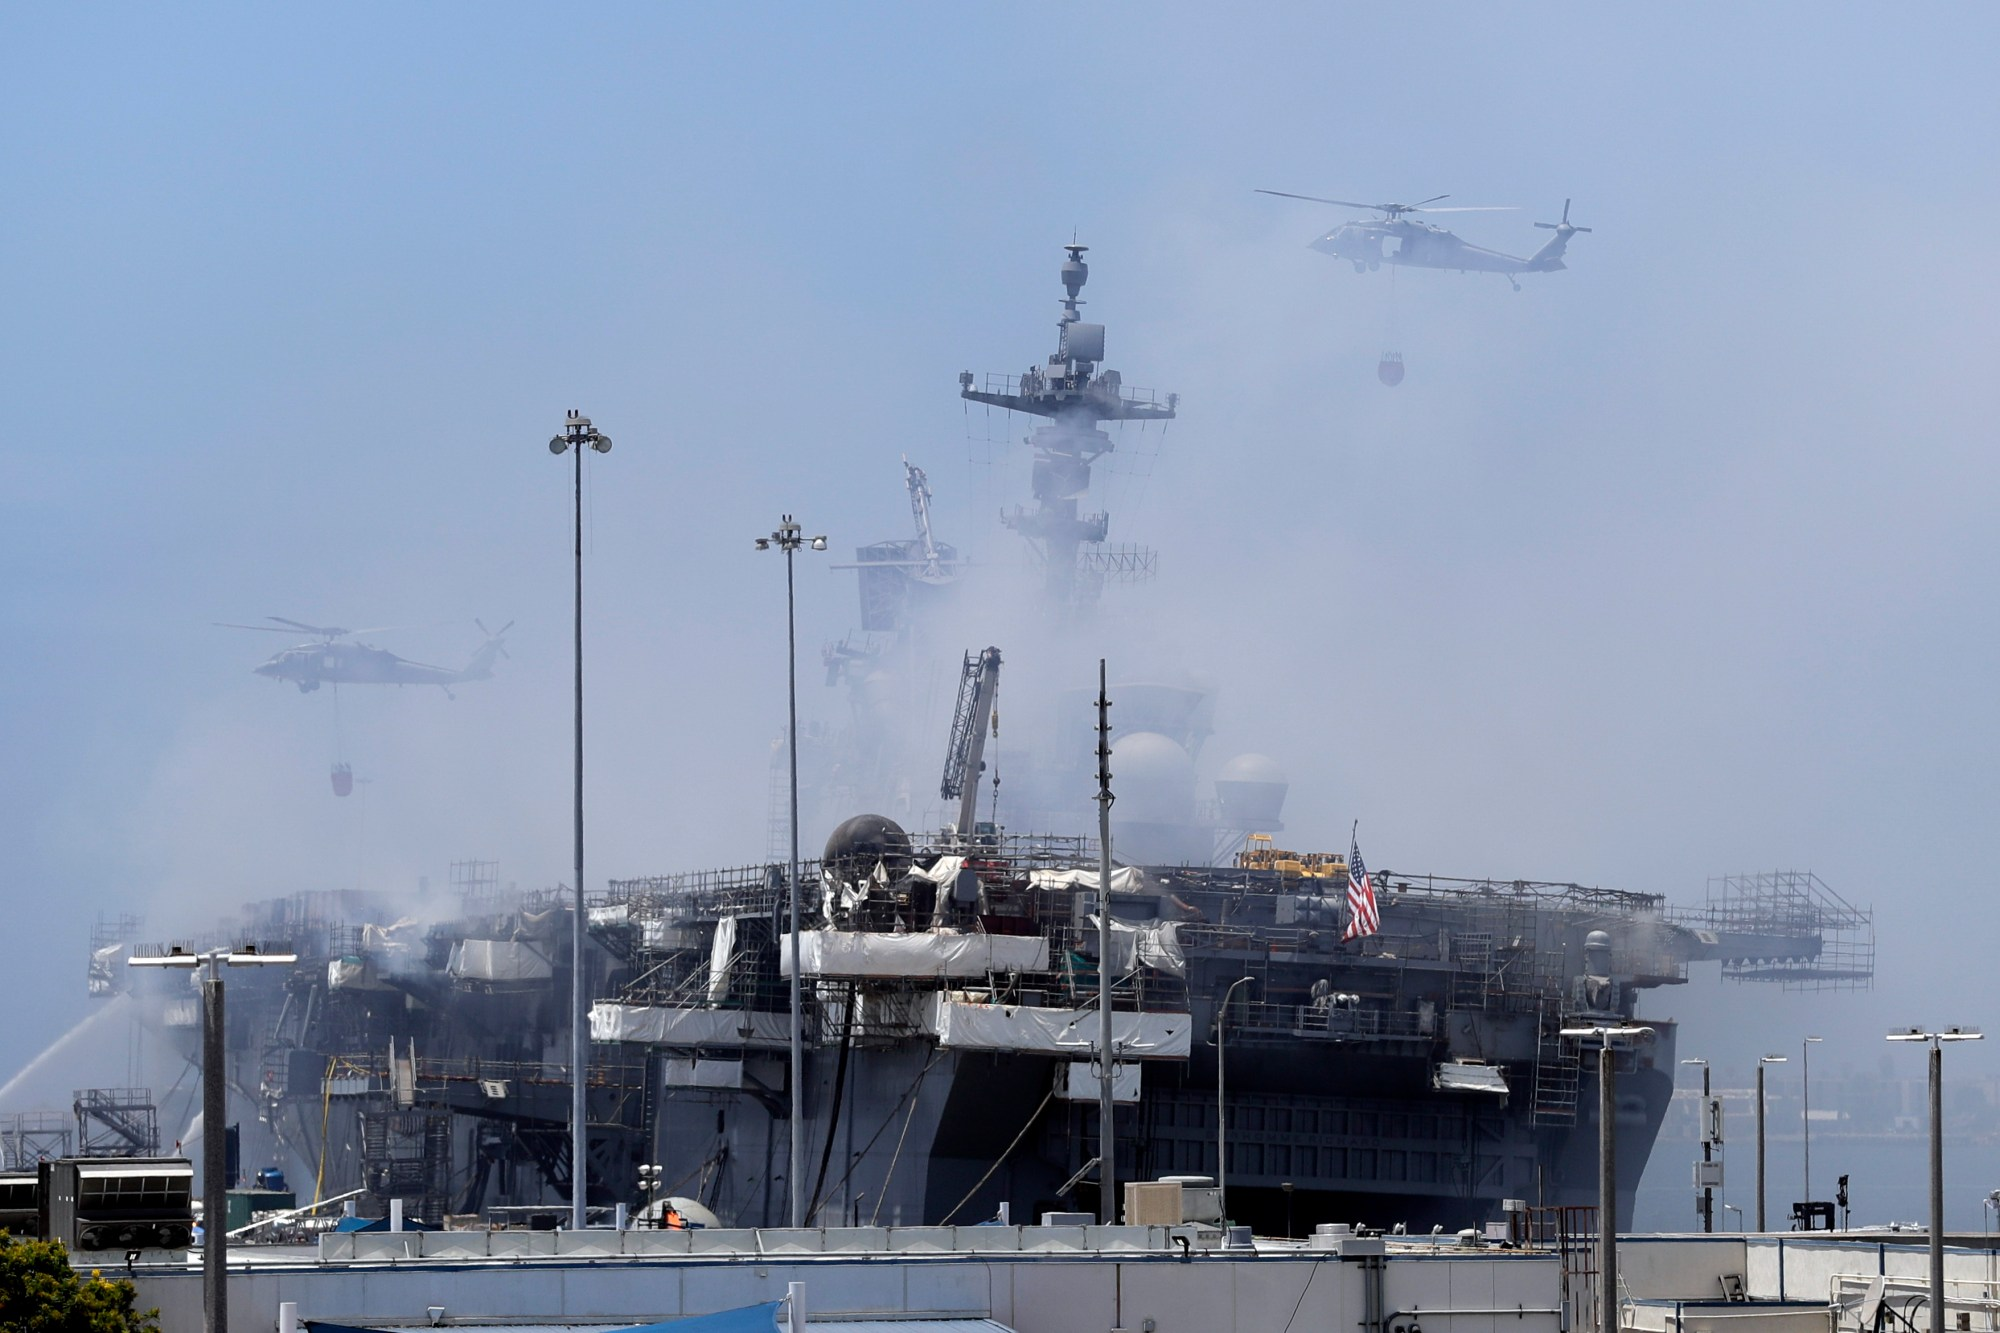 Helicopters approach the USS Bonhomme Richard as crews fight the fire on July 13, 2020, in San Diego. (AP Photo/Gregory Bull)